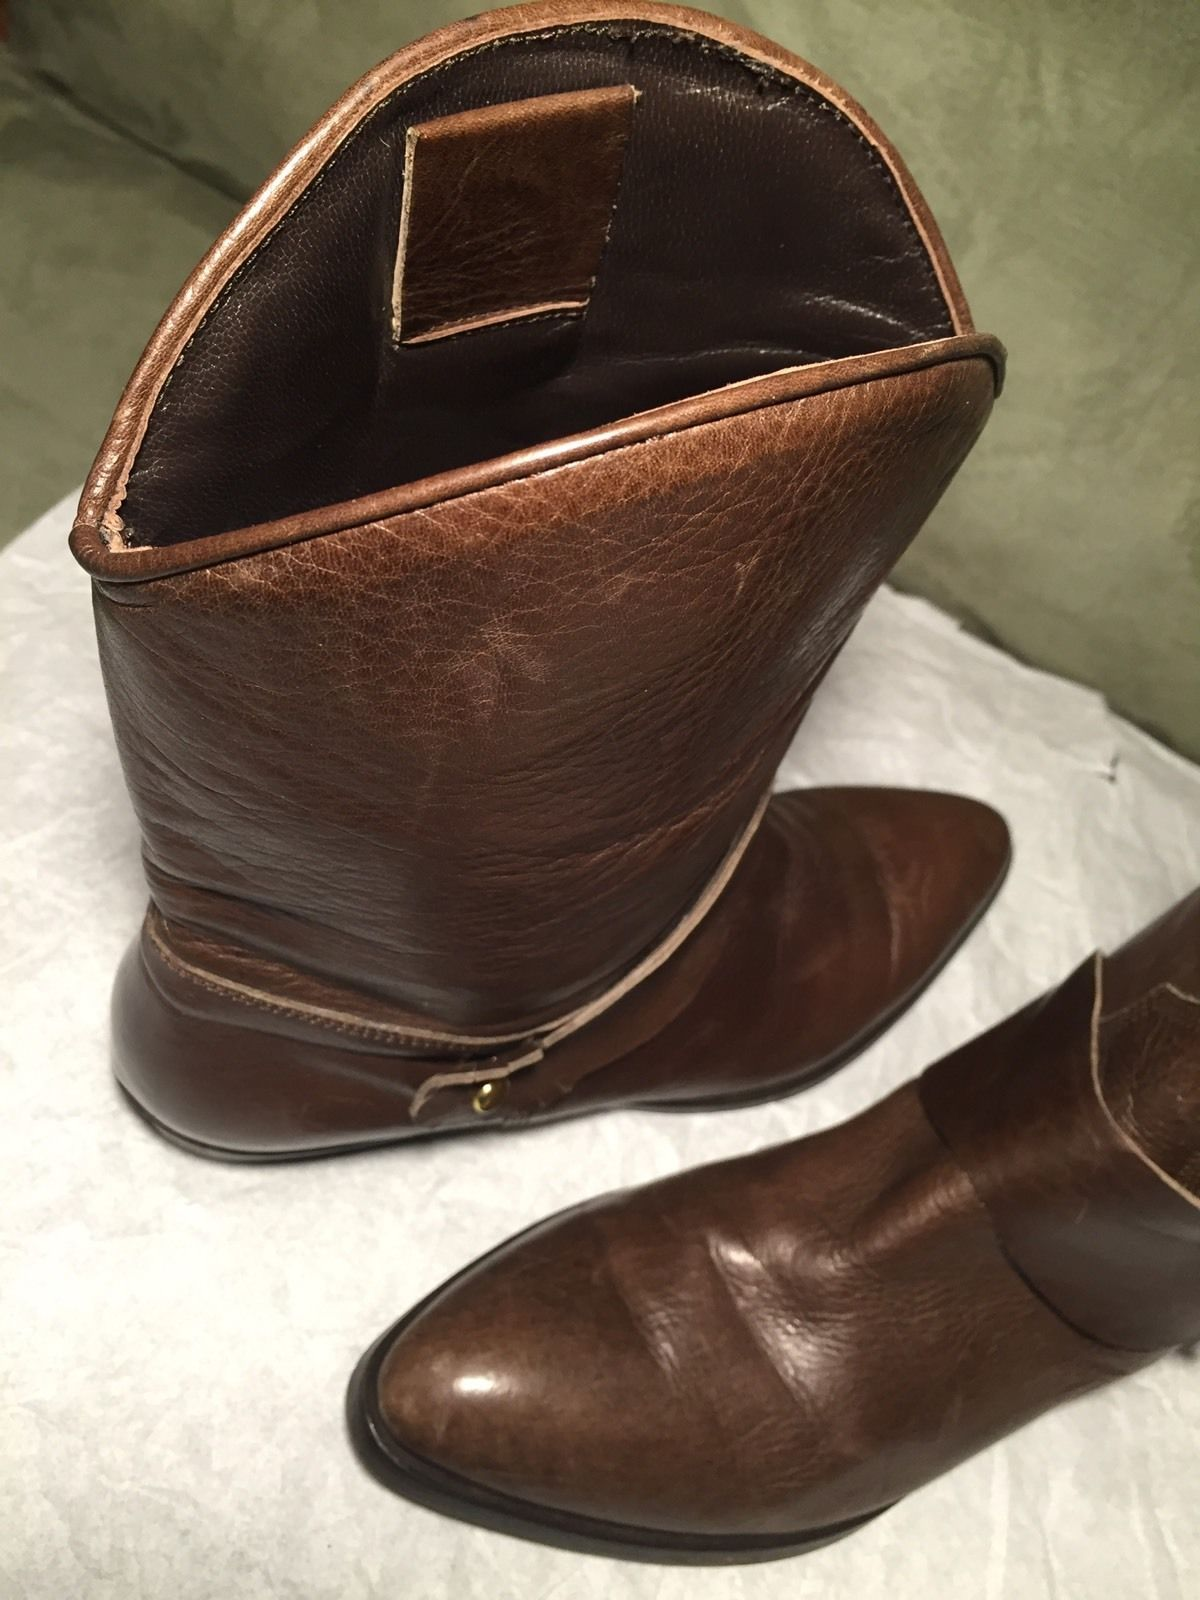 LUCA VALENTINI Authentic Brown Leather Ankle Boots Size 40